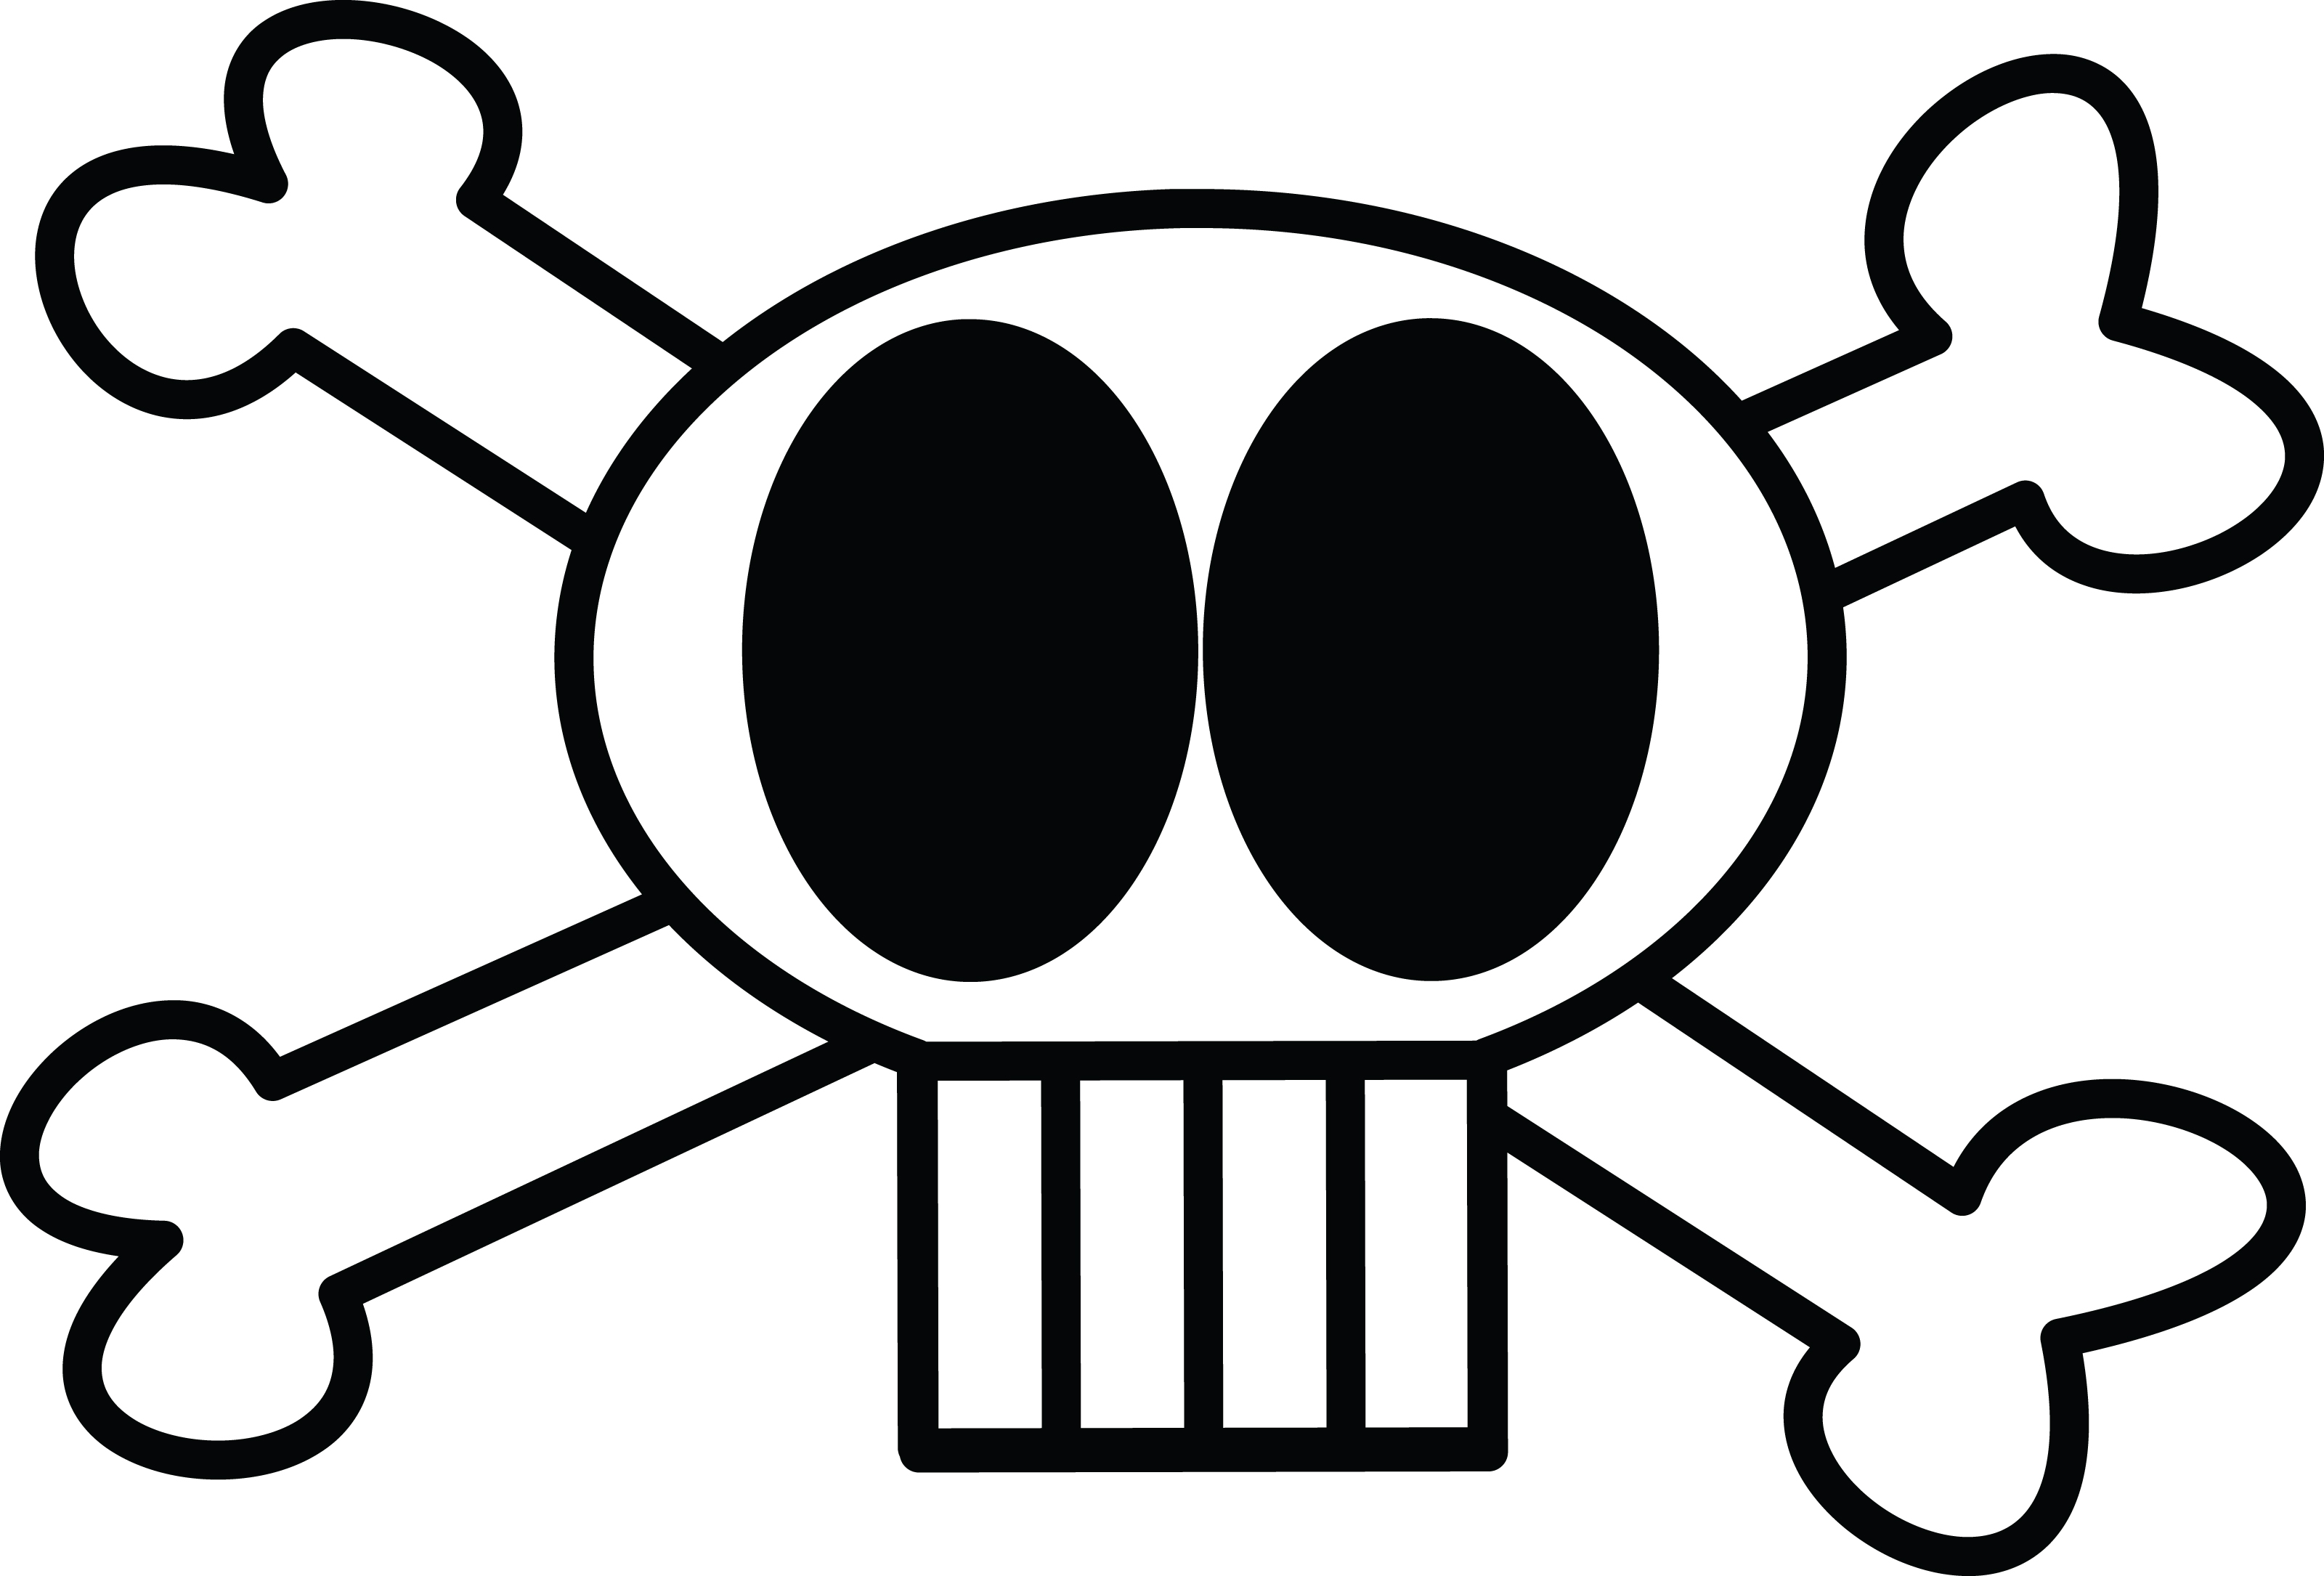 Free Clipart Illustration Of Skull And Crossbones